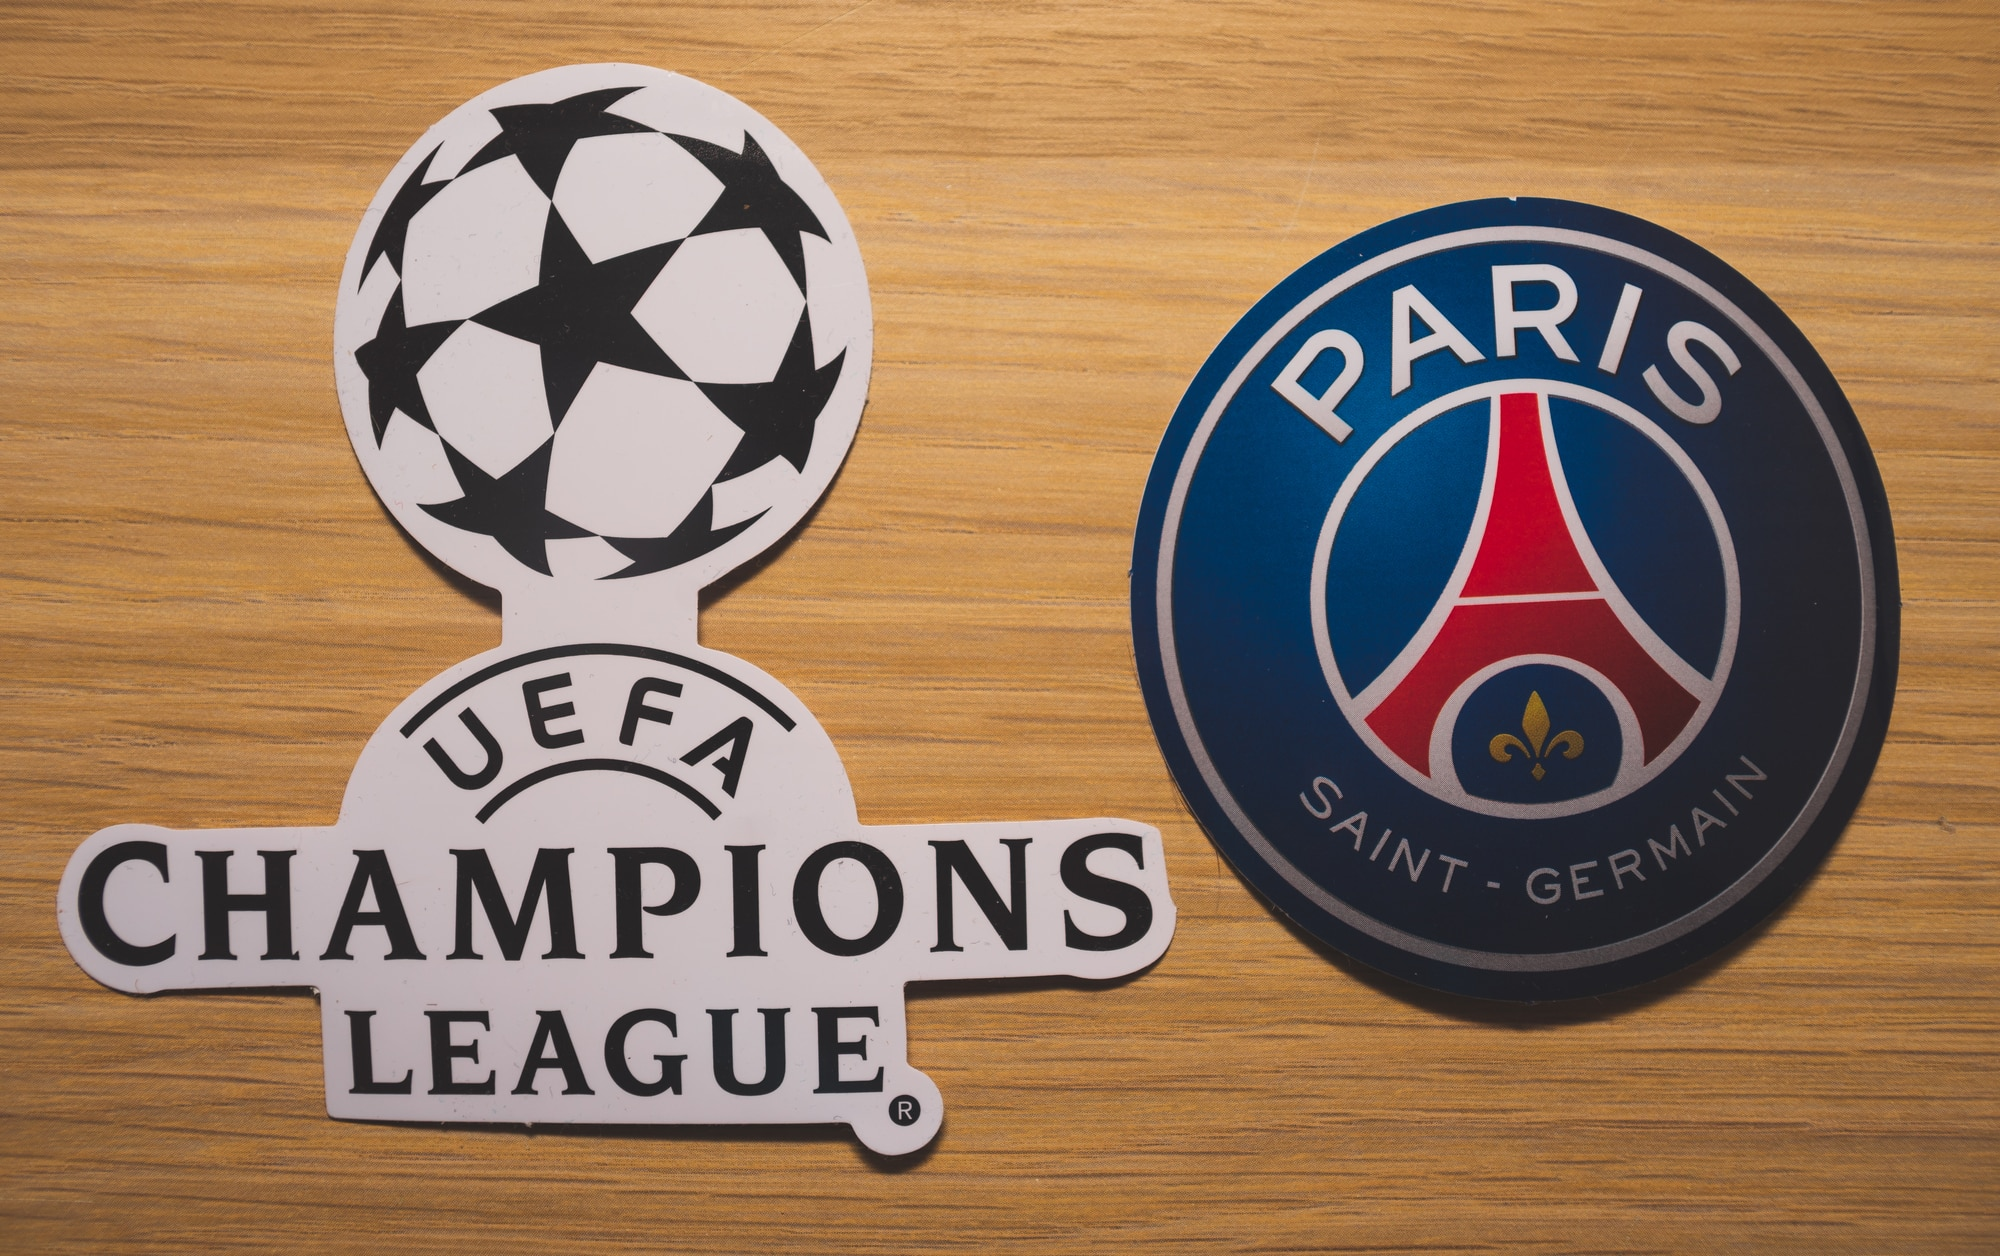 Paris St Germain 0, Bayern Munich 1